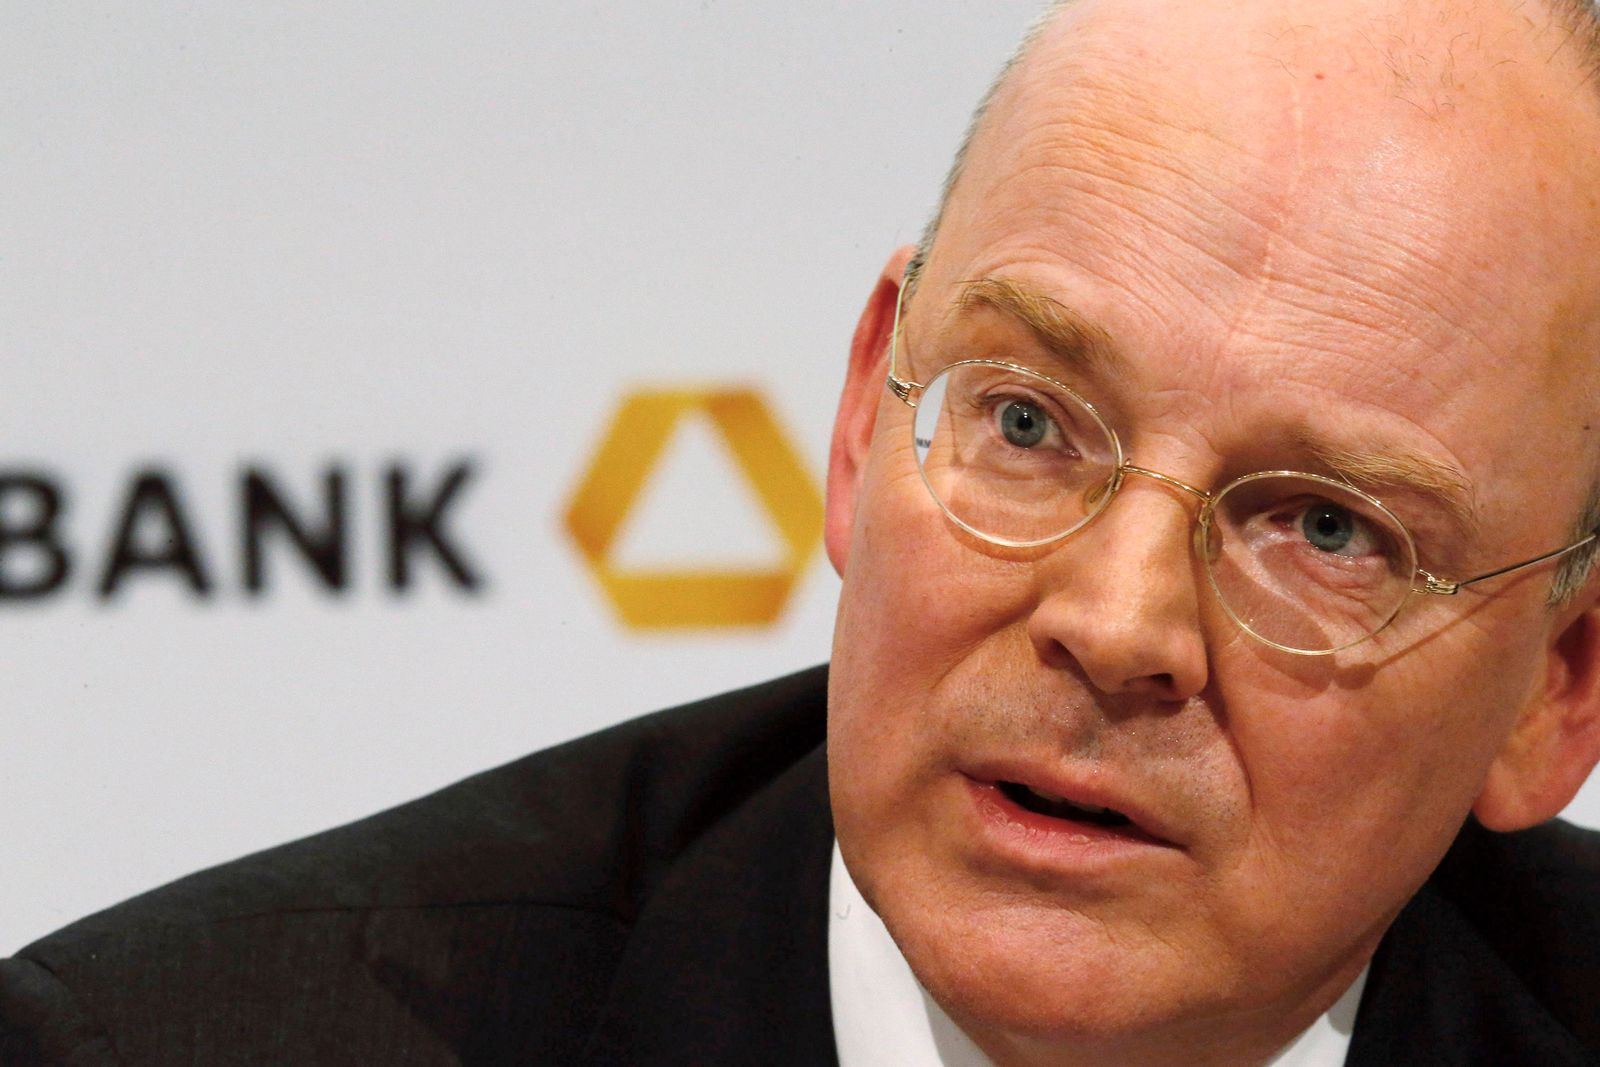 Commerzbank Chief Executive Blessing listens during the bank's annual news conference in Frankfurt